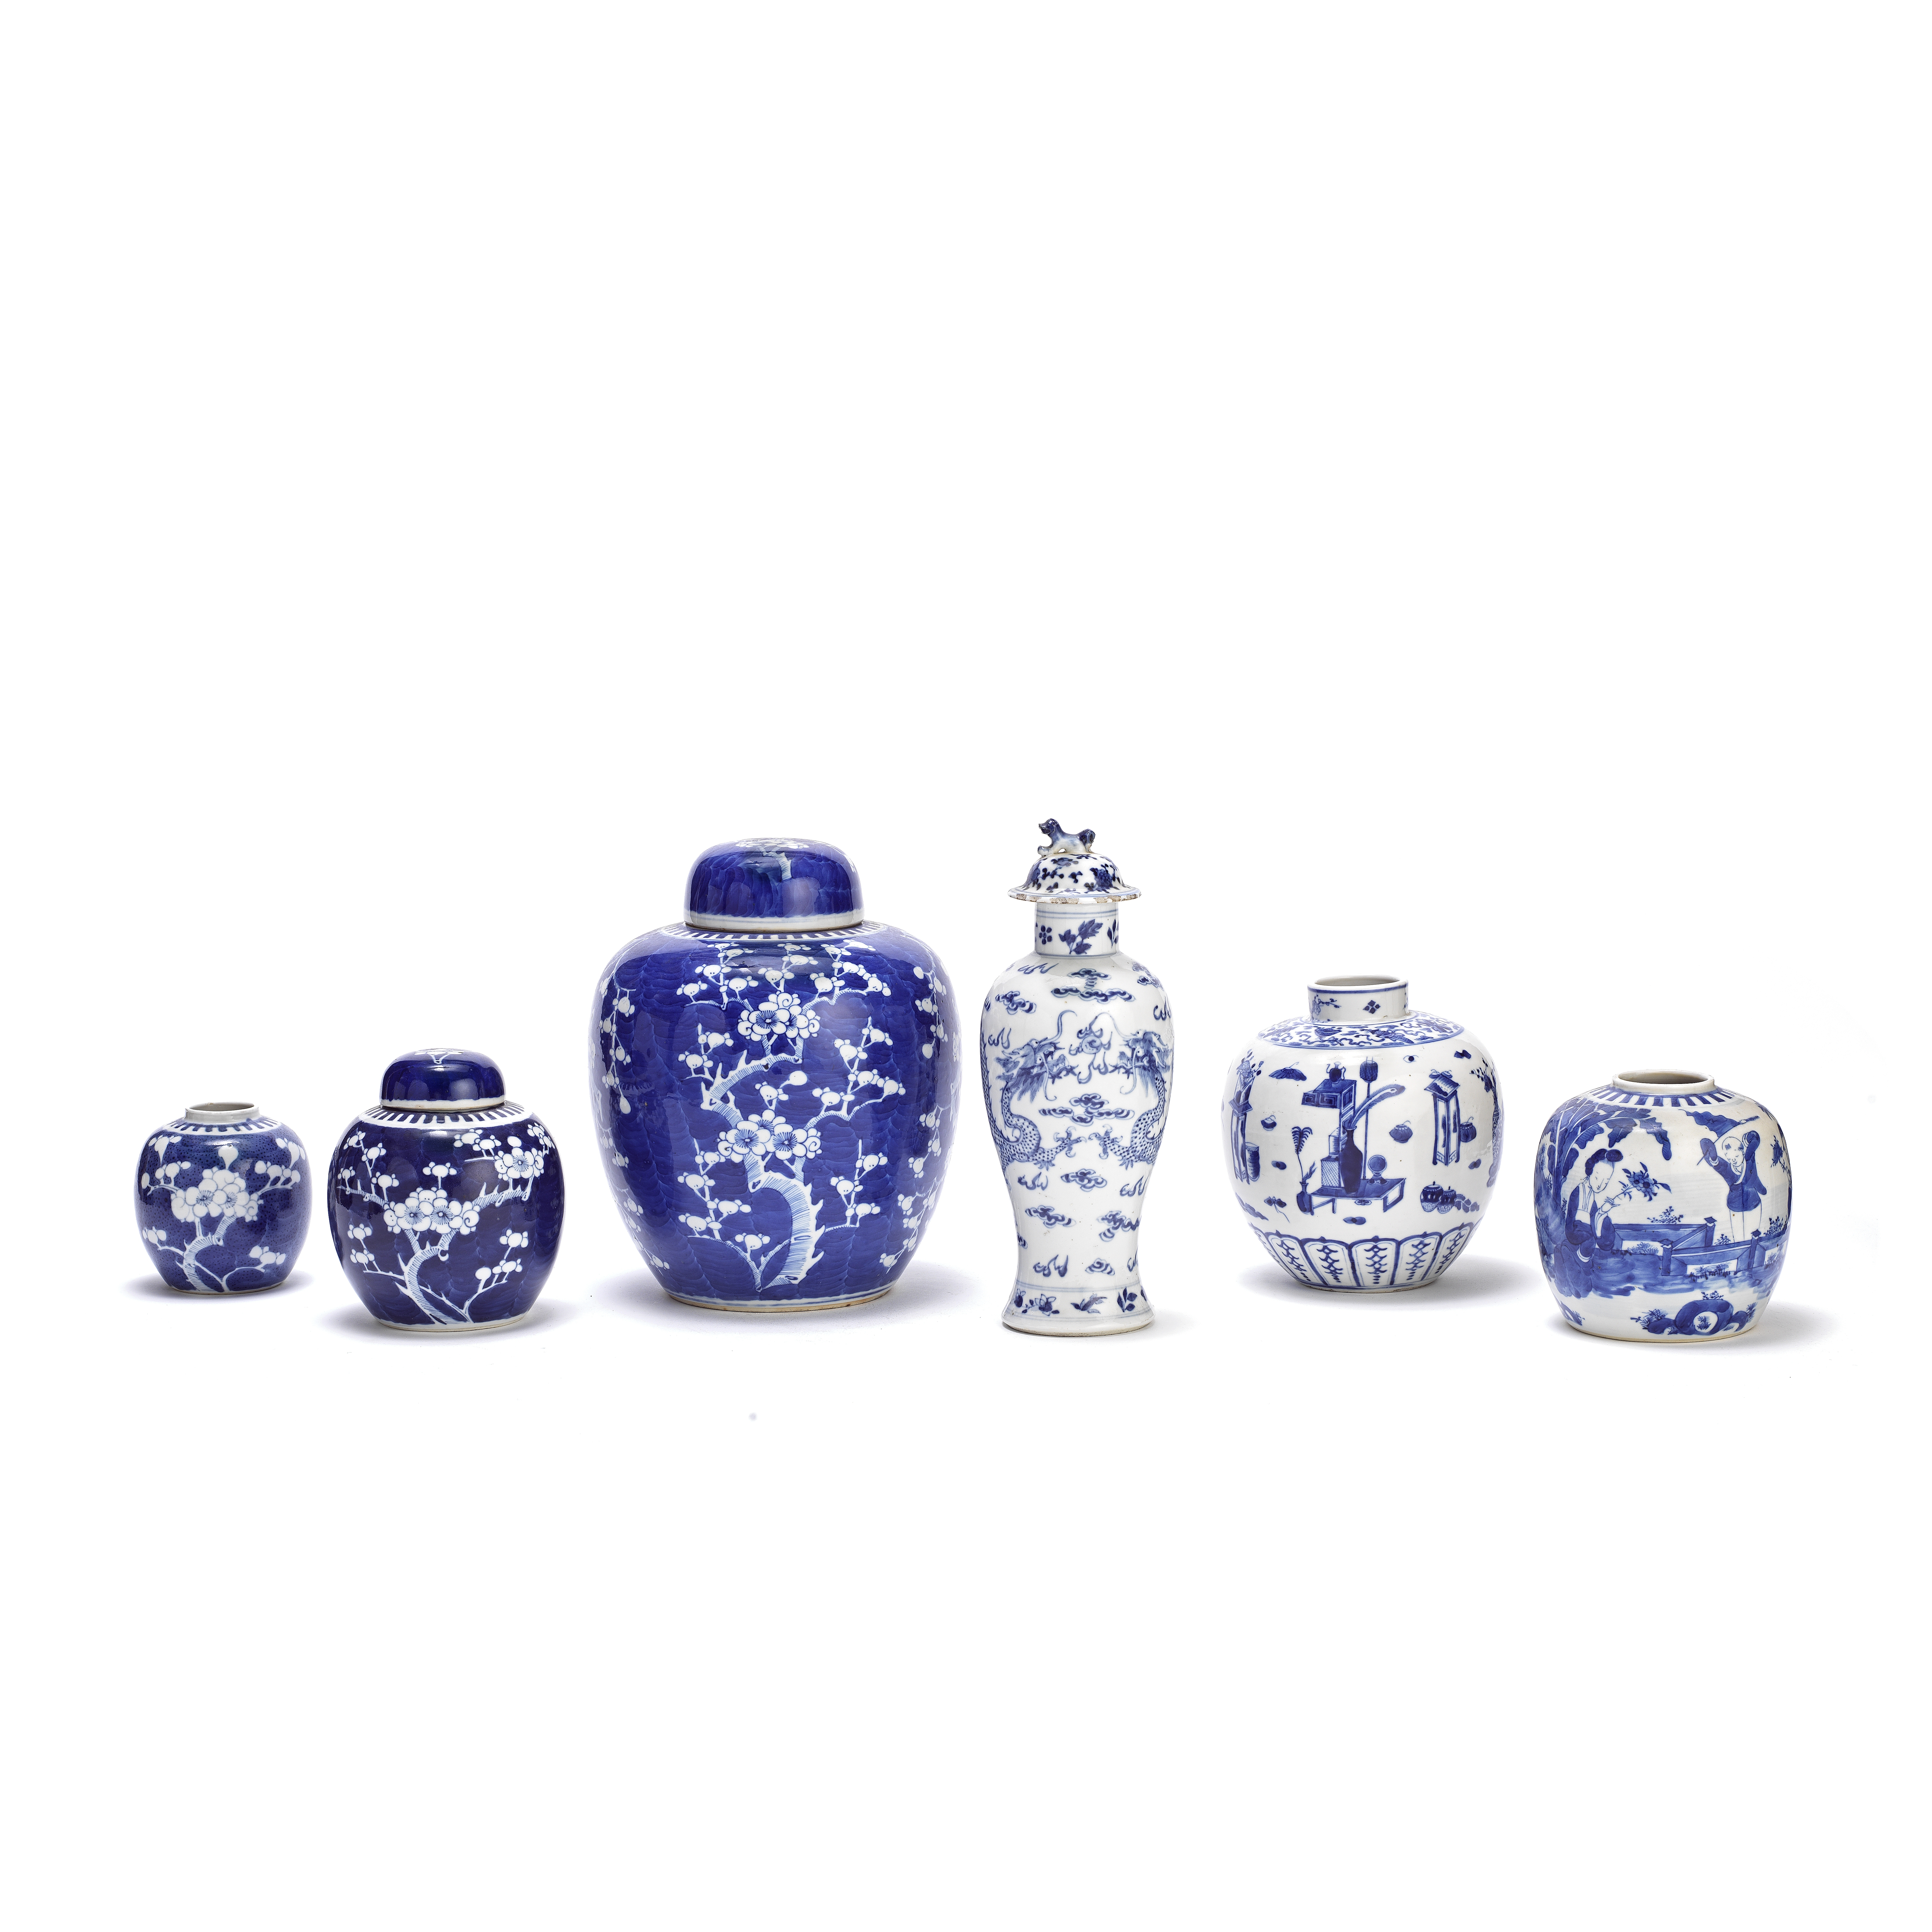 A GROUP OF SIX BLUE AND WHITE JARS 19th/20th century (9)